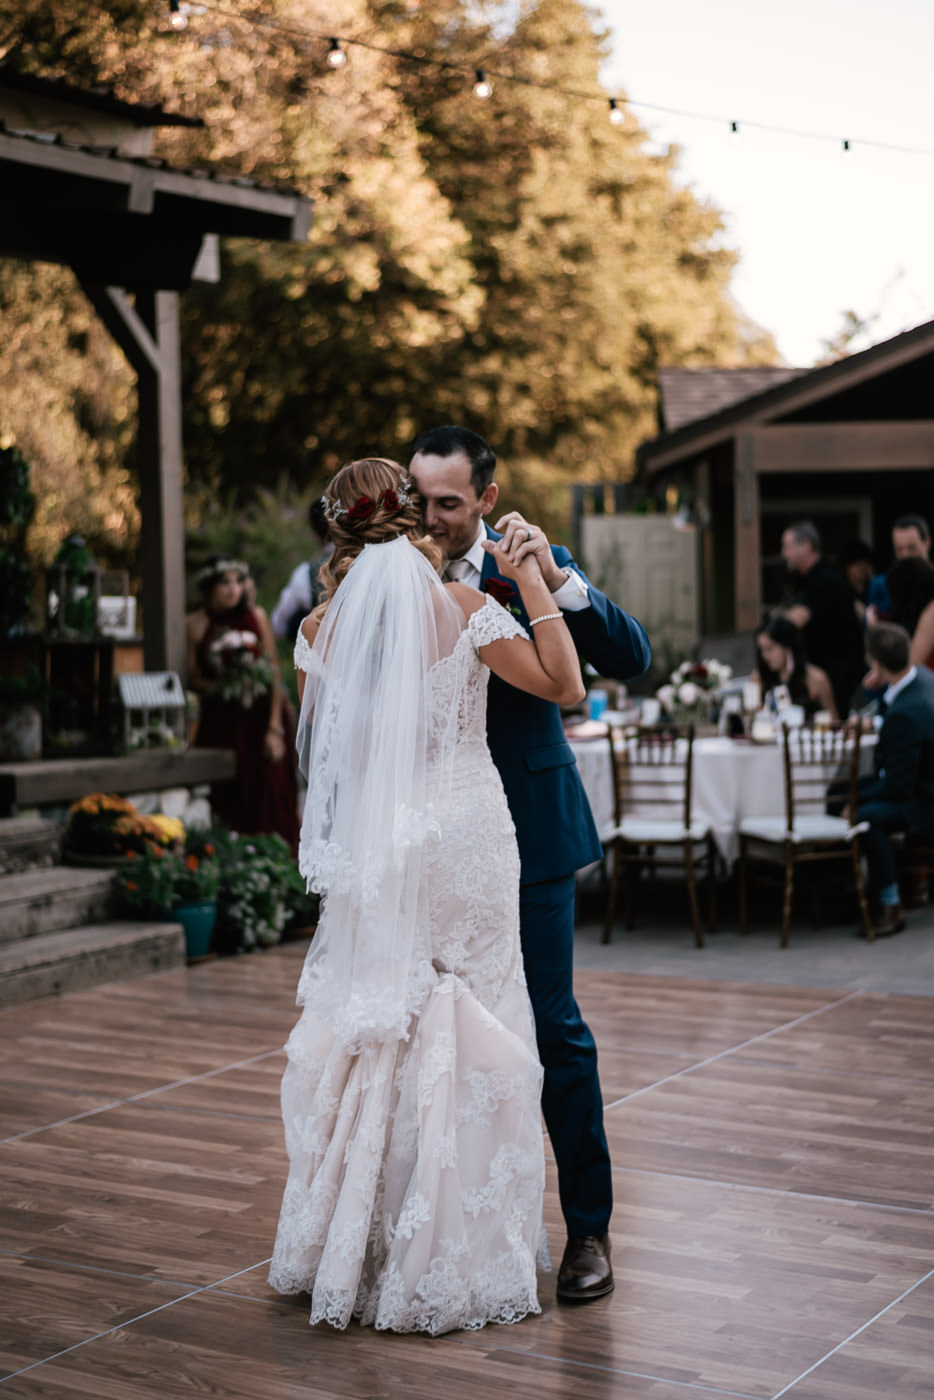 Groom whipsers into his new wife's ear as they enjoy their first dance.